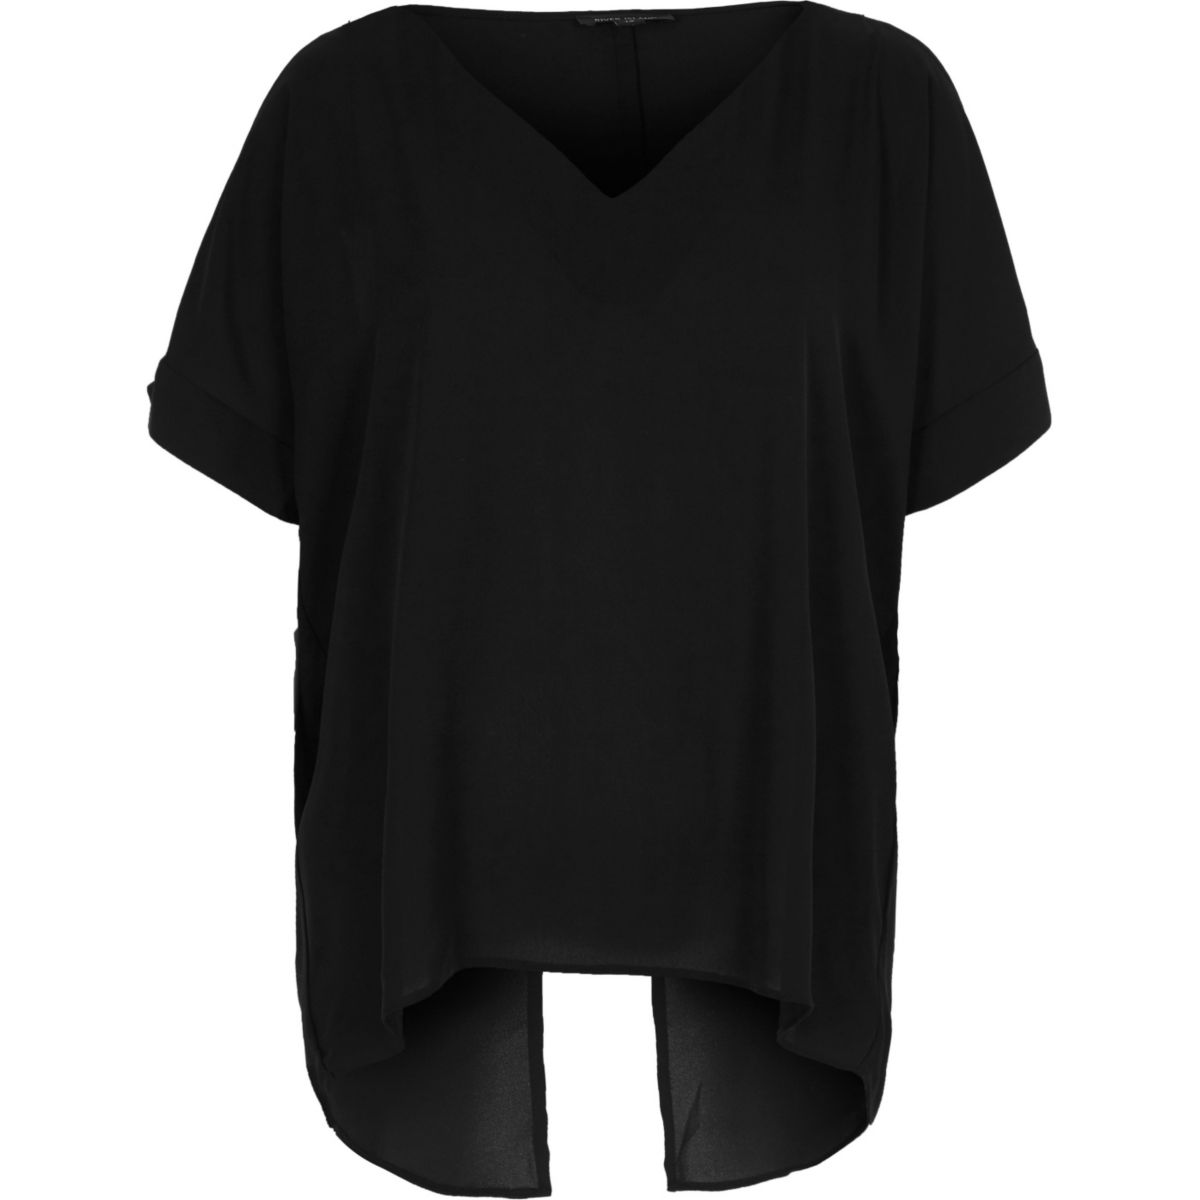 Black cold shoulder V-neck top